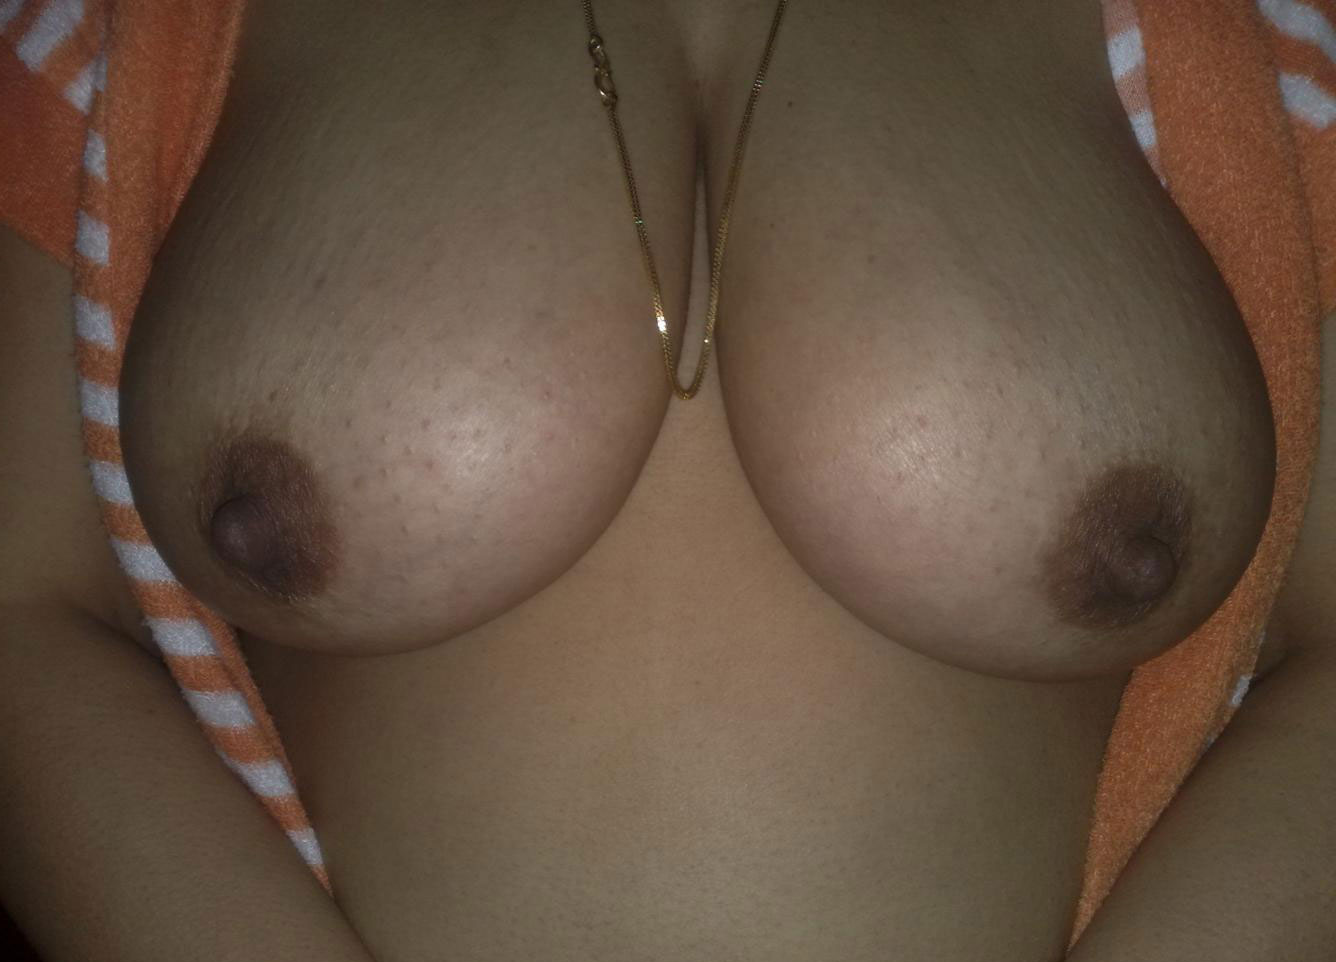 Naked boobs without face